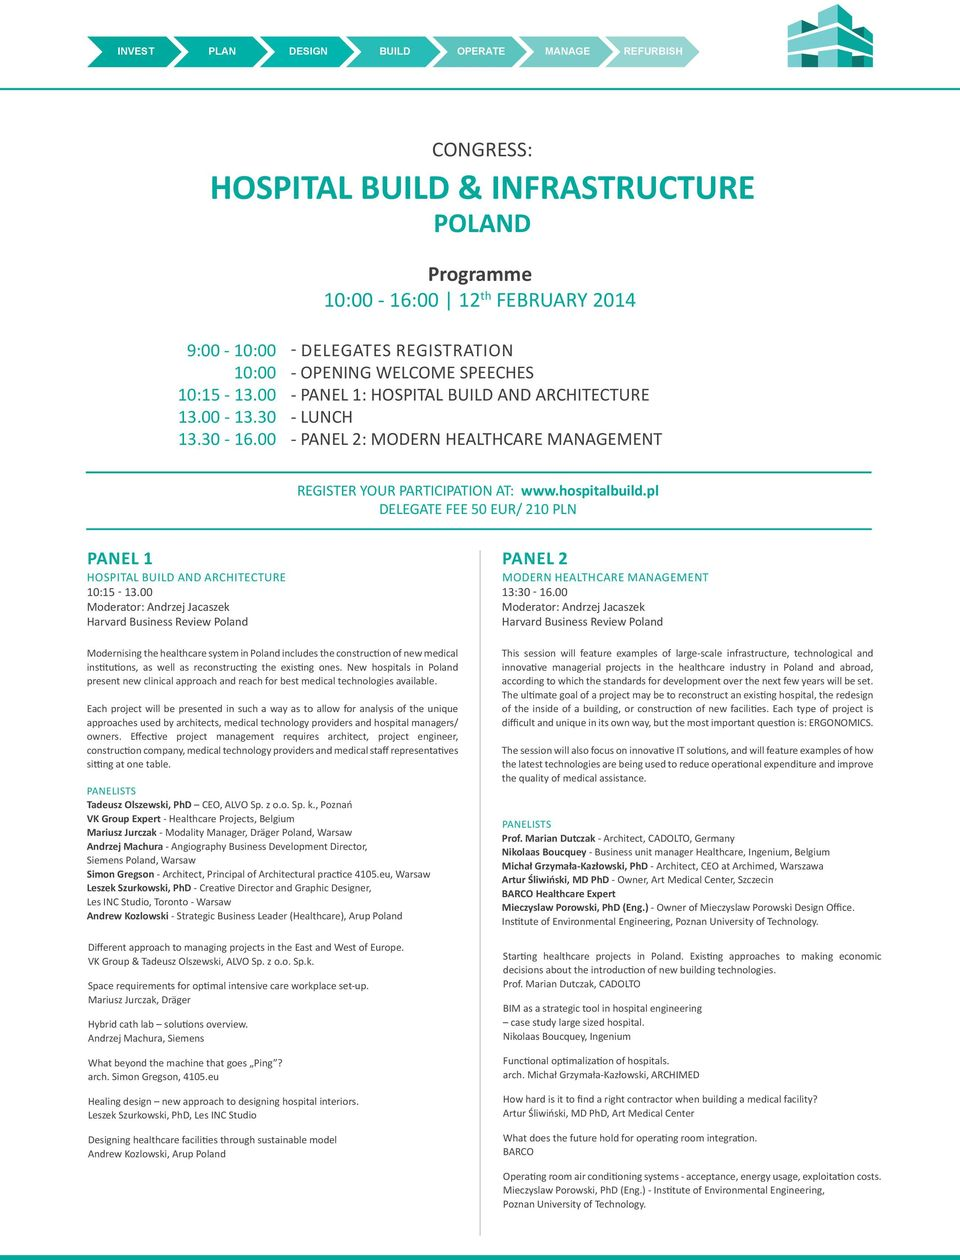 pl DELEGATE FEE 50 EUR/ 210 PLN PANEL 1 PANEL 2 HOSPITAL AND ARCHITECTURE 10:15-13.00 Moderator: Andrzej Jacaszek Harvard Business Review Poland MODERN HEALTHCARE MENT 13:30-16.